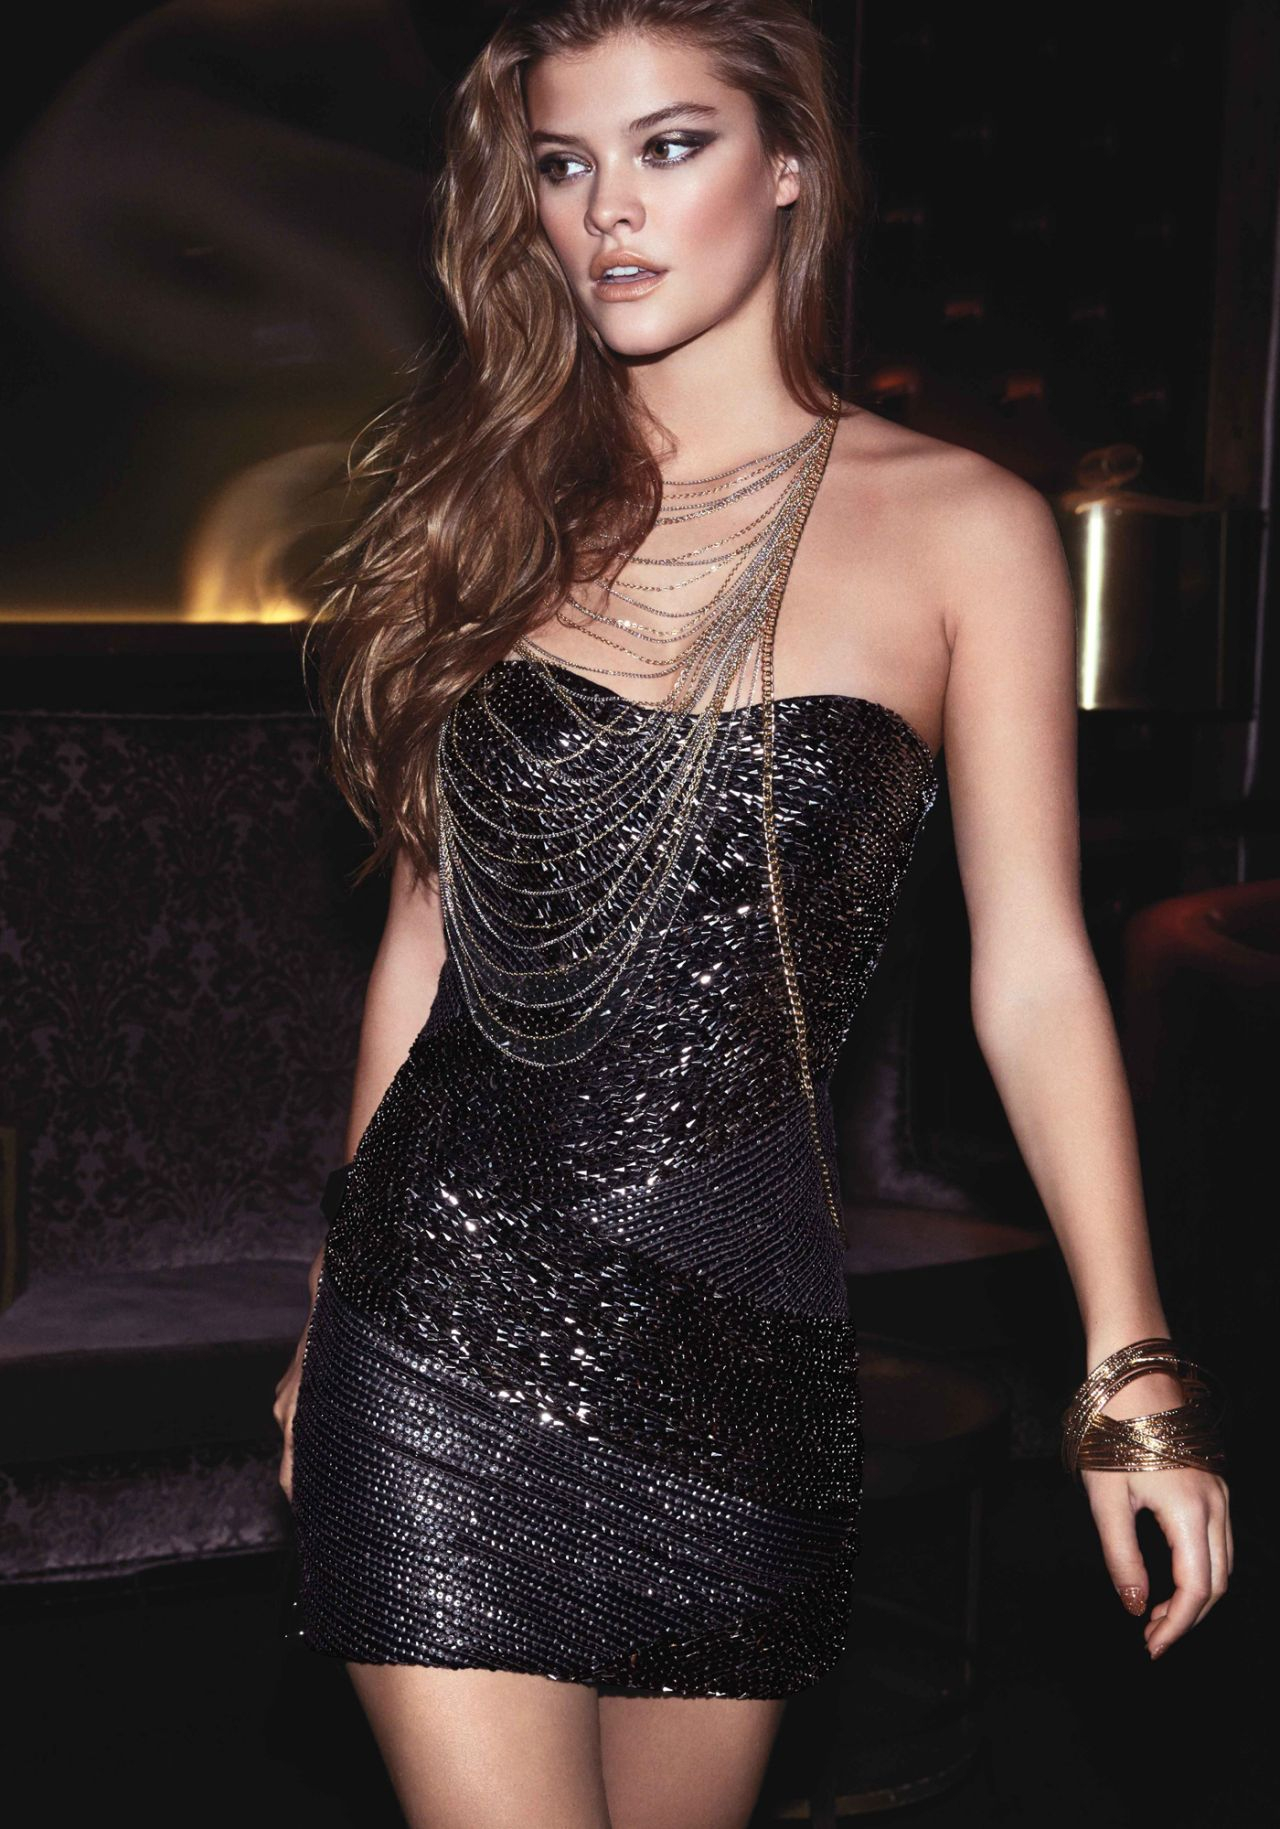 Nina Agdal Photoshoot for Bebe - December 2013